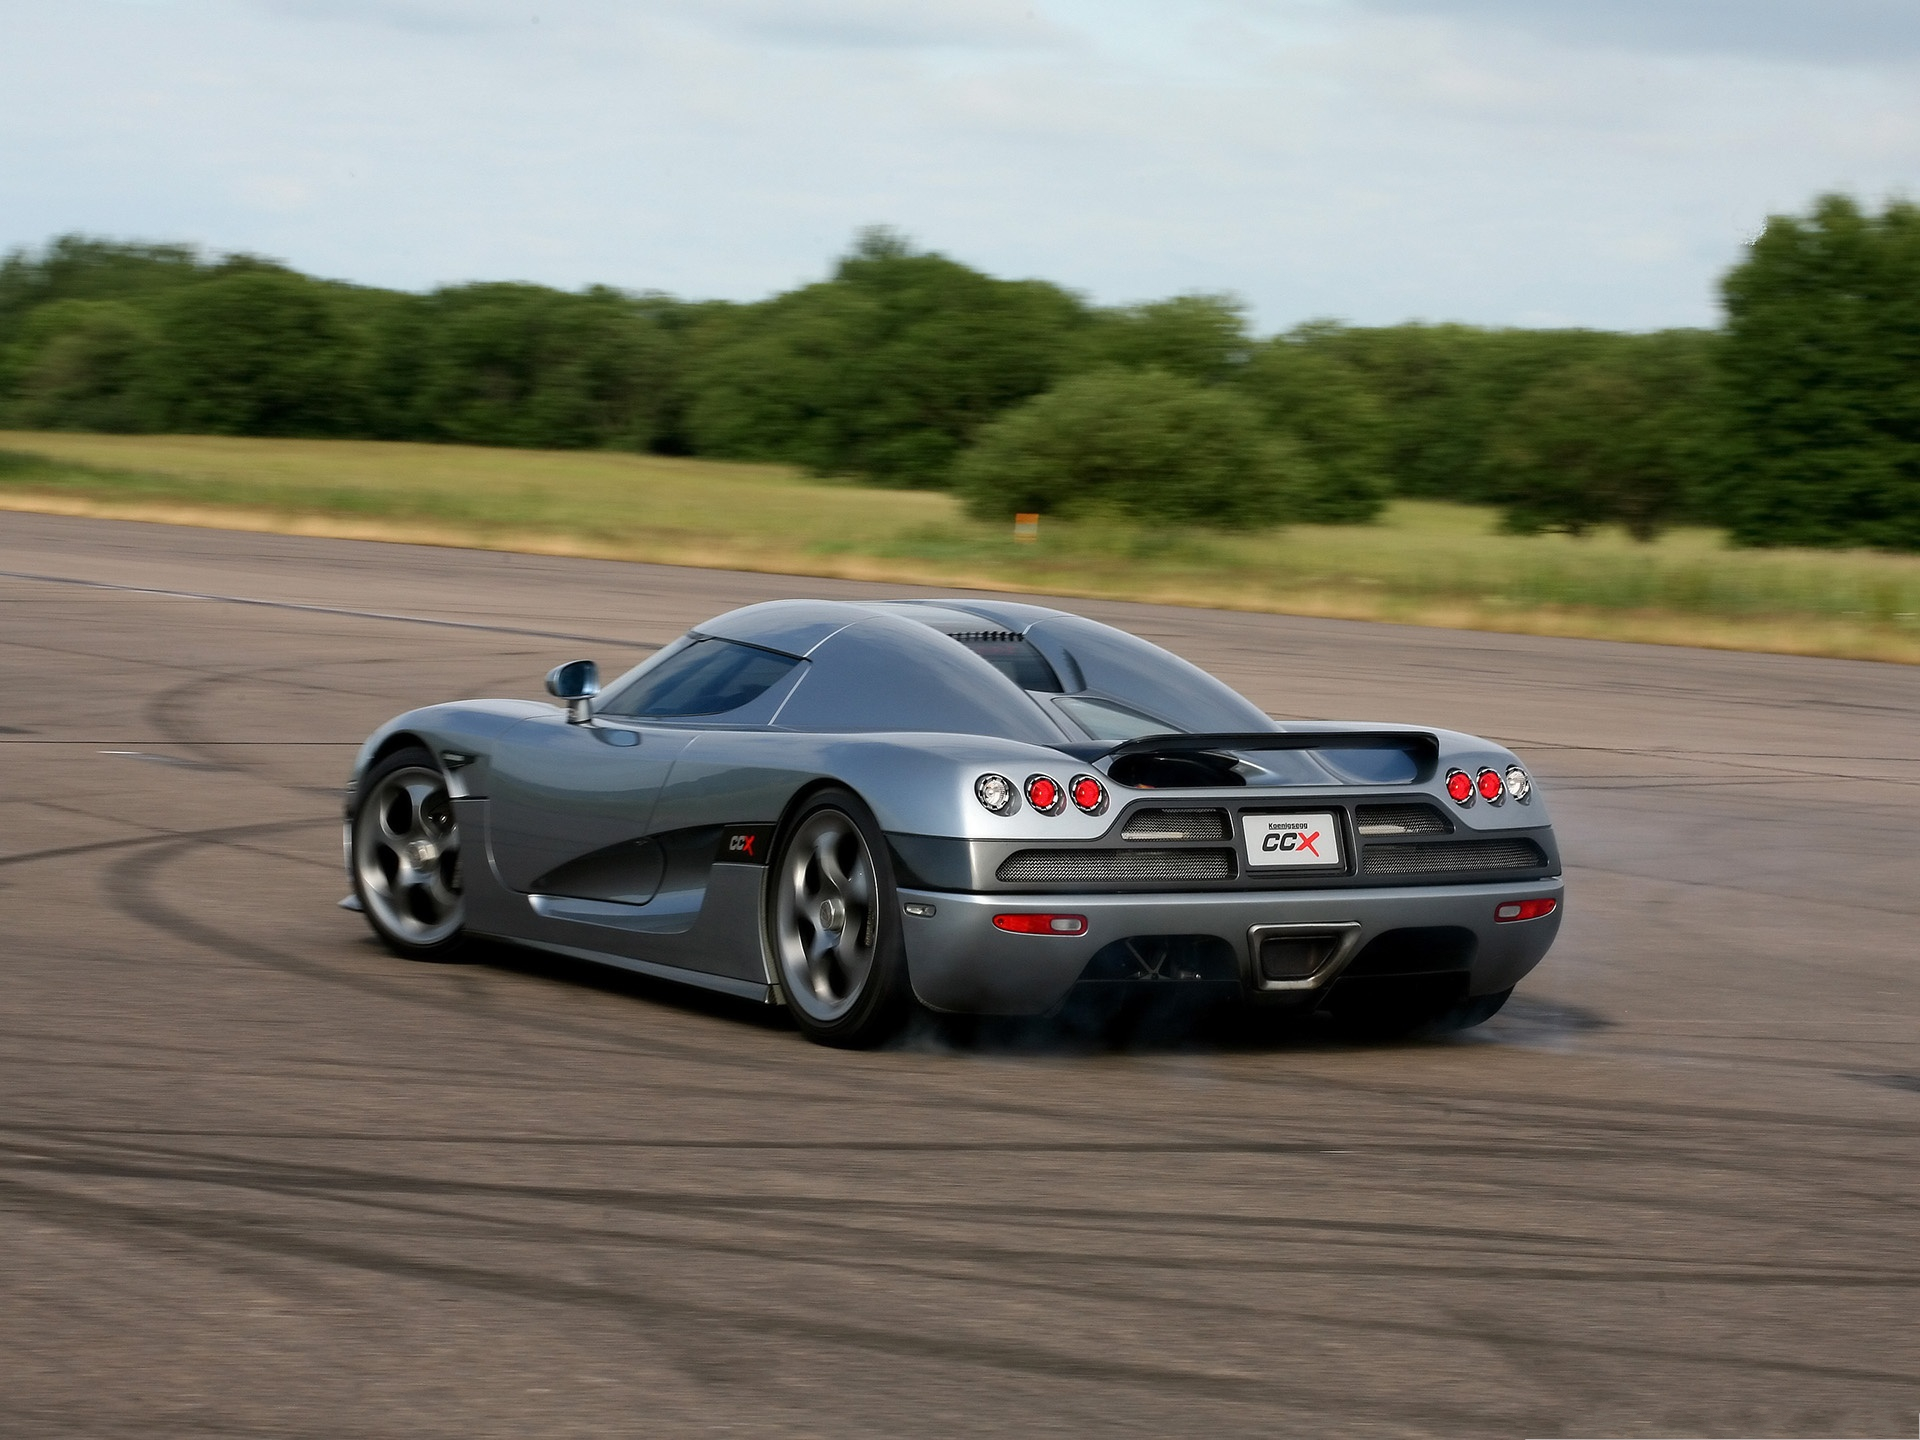 click to free download the wallpaper--Free Car Wallpapers, Koenigsegg CCX Among Nature Landscape, Rear And Side Look 1920X1440 free wallpaper download